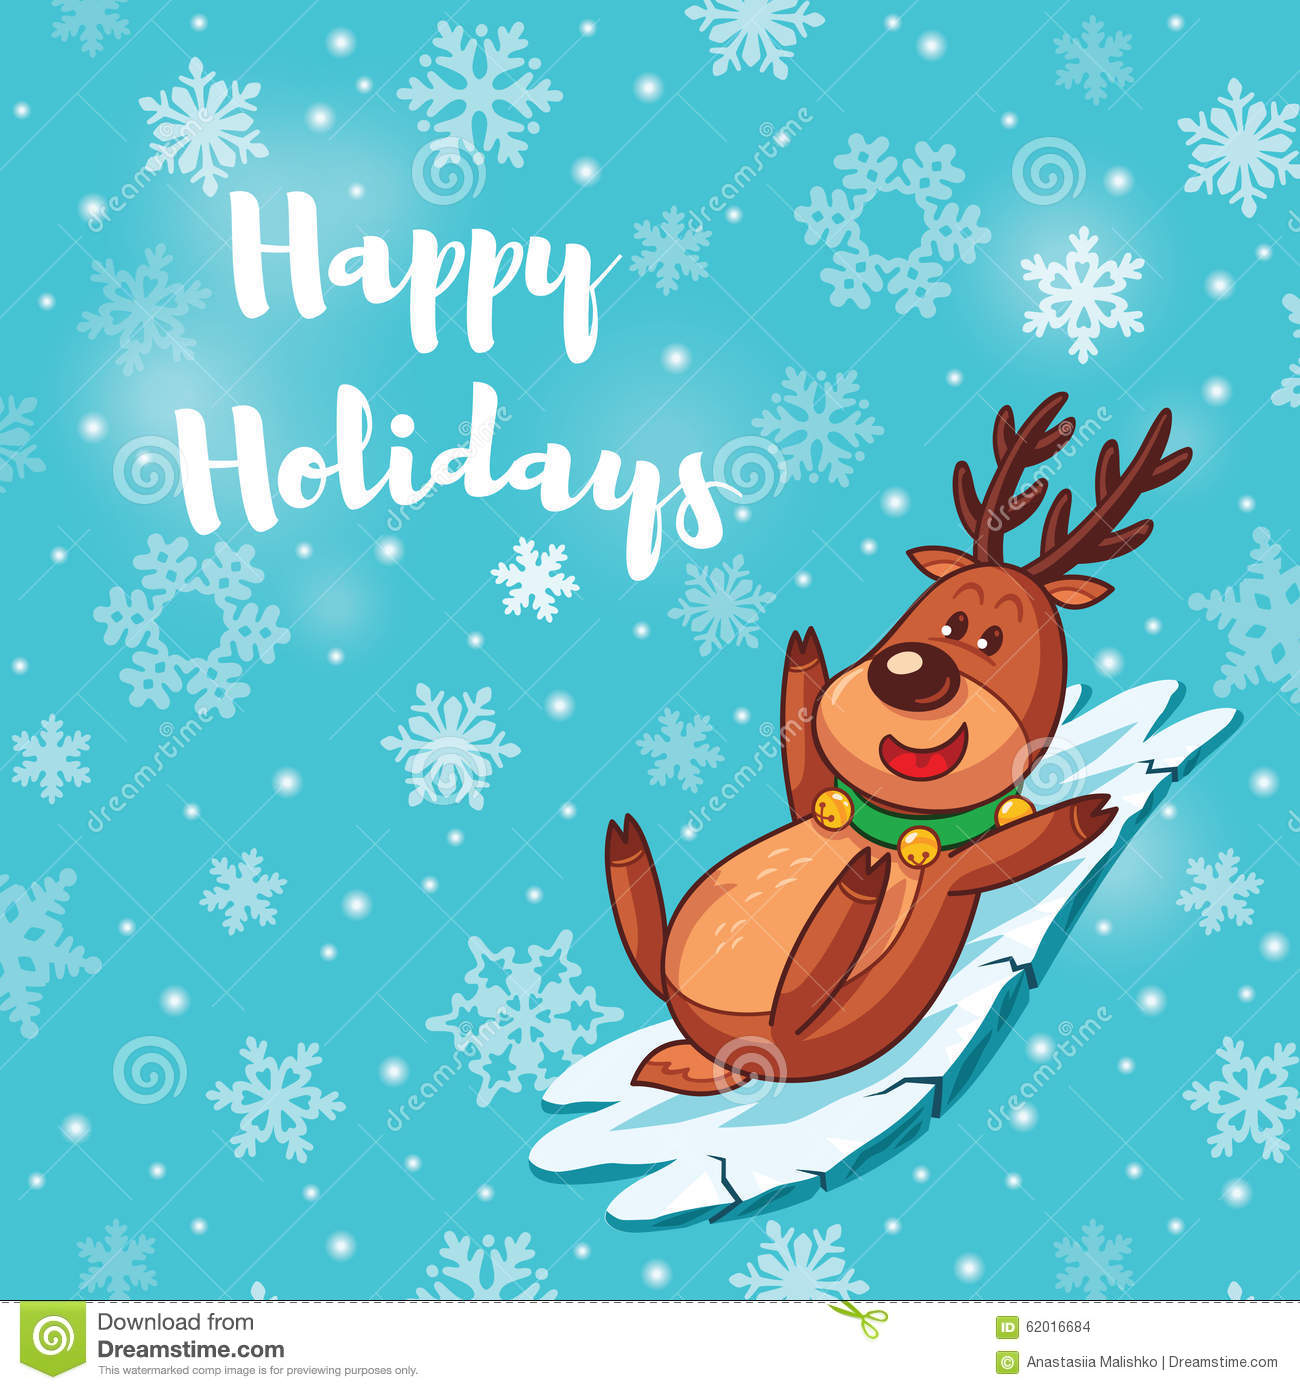 Happy holidays card with cute cartoon deer stock vector happy holidays card with cute cartoon deer kristyandbryce Choice Image